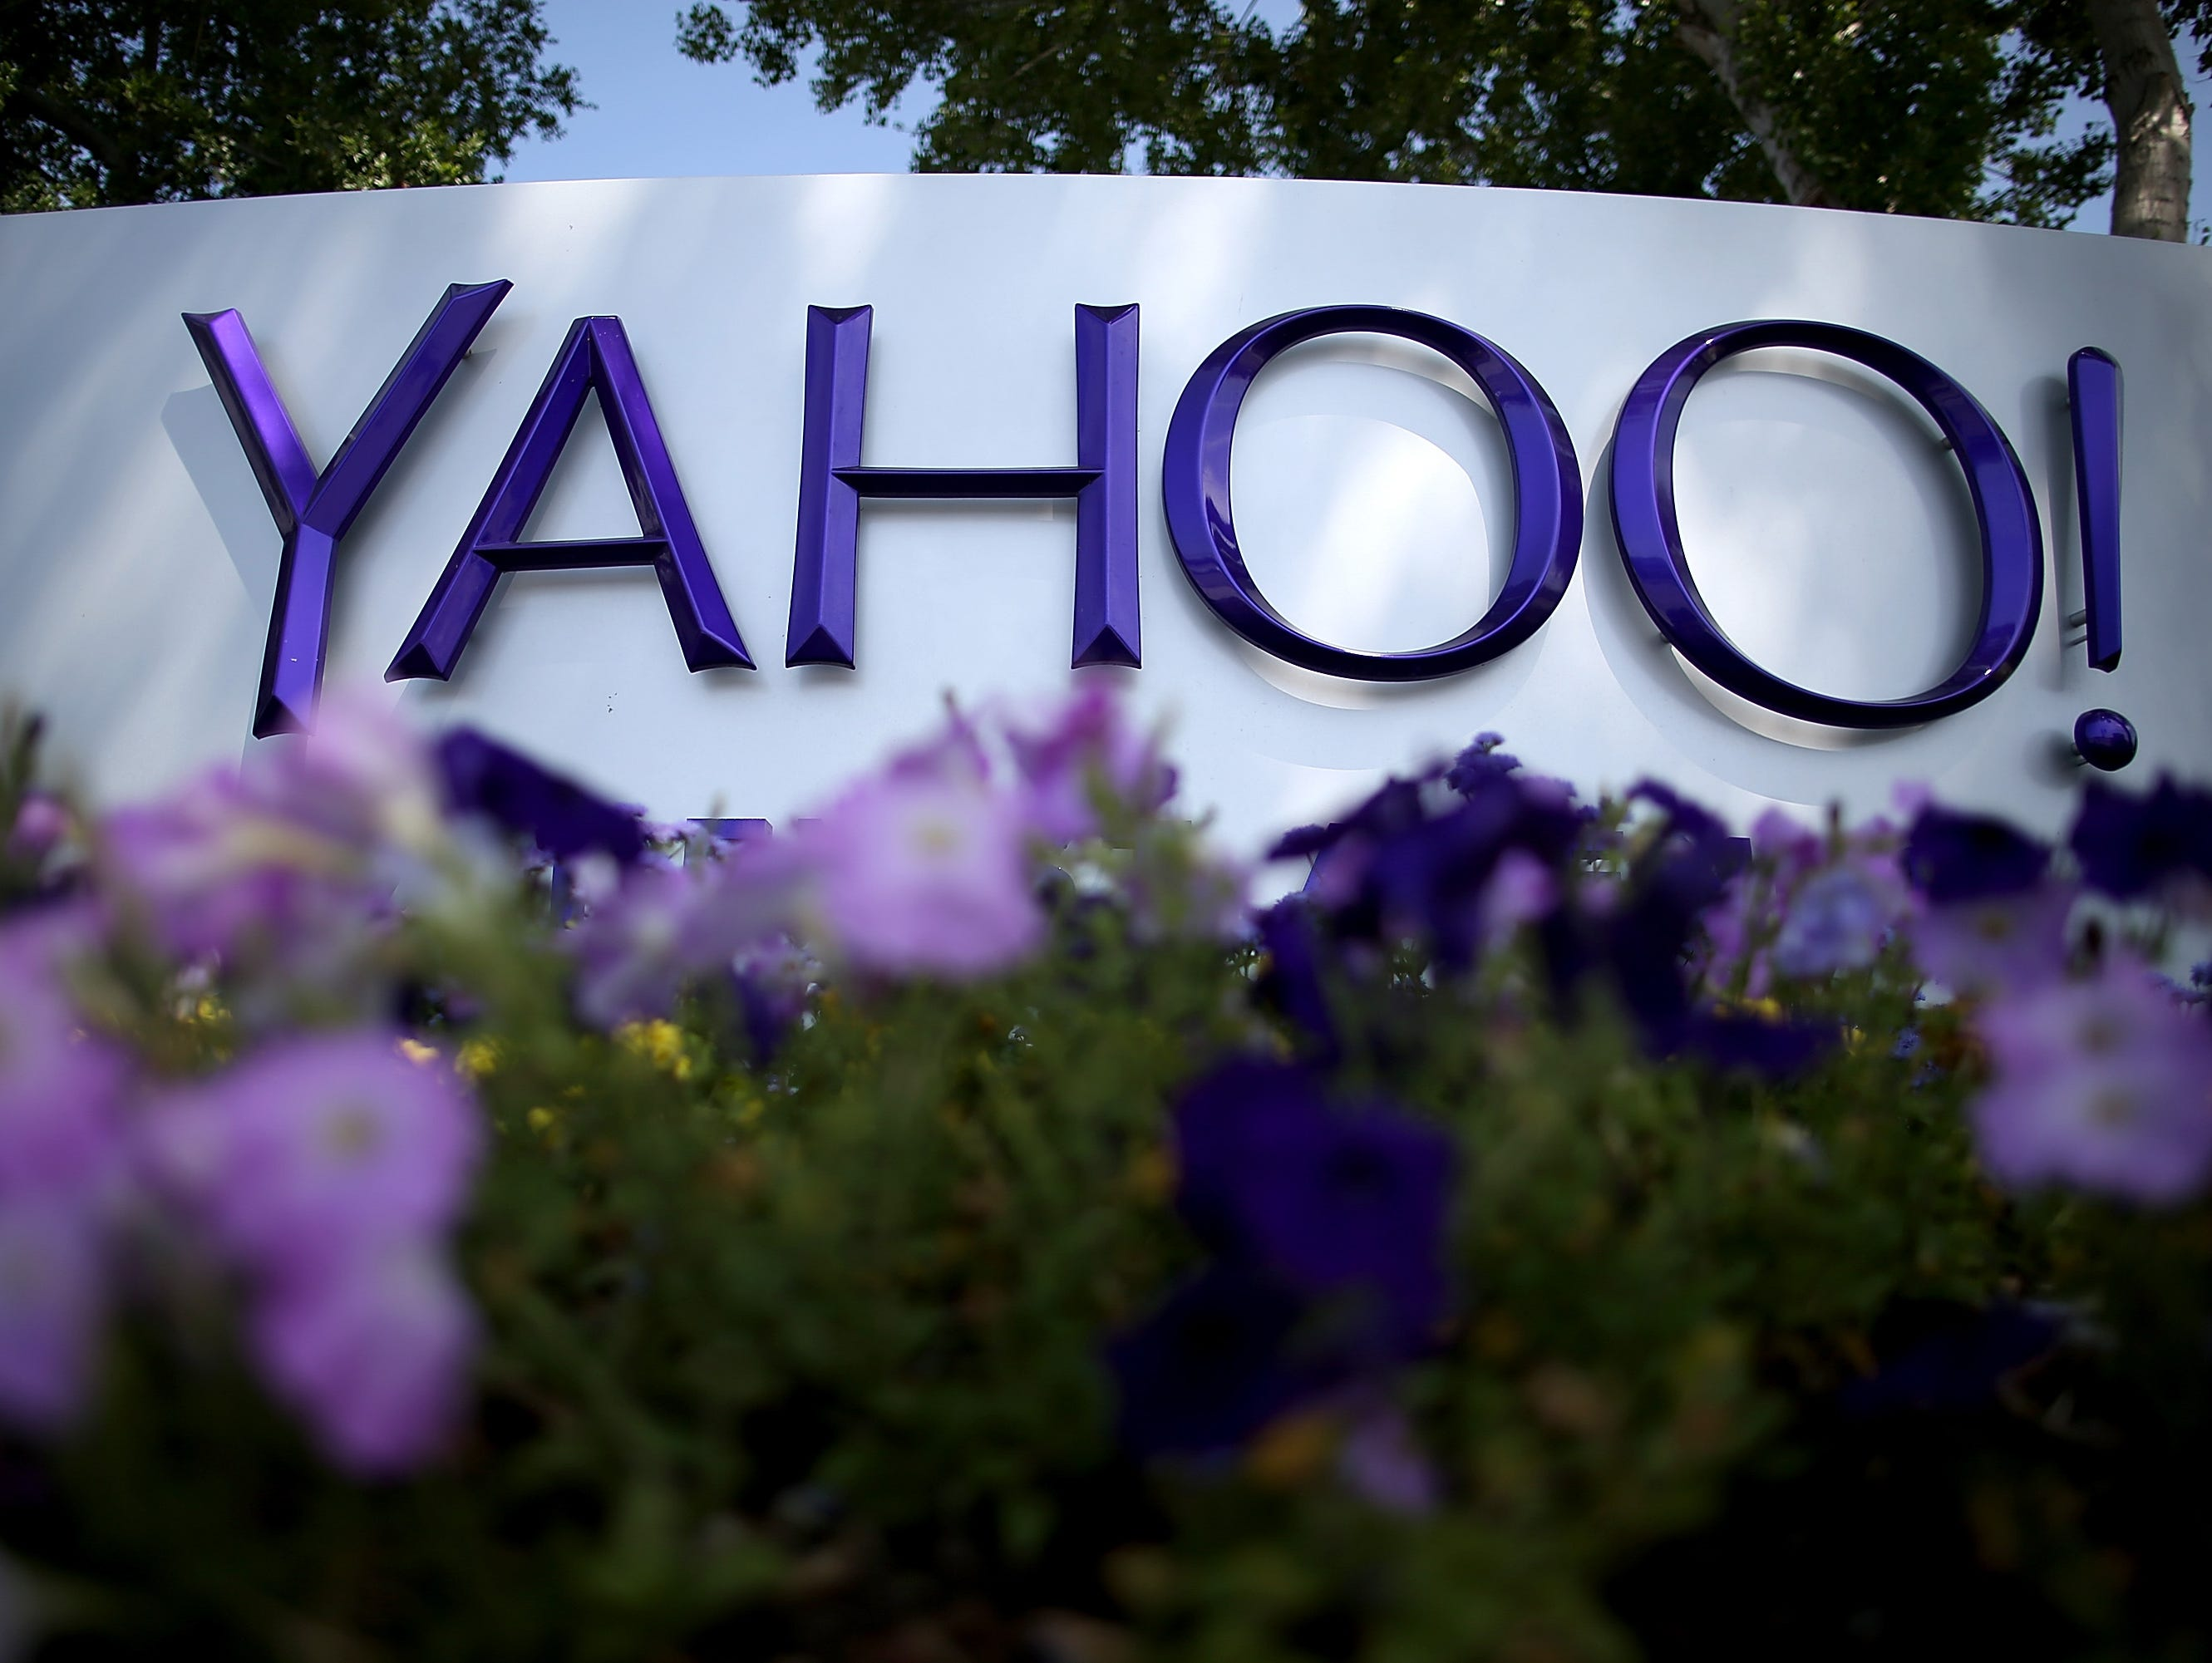 Yahoo comes with customers and infrastructure that make it an interesting target.